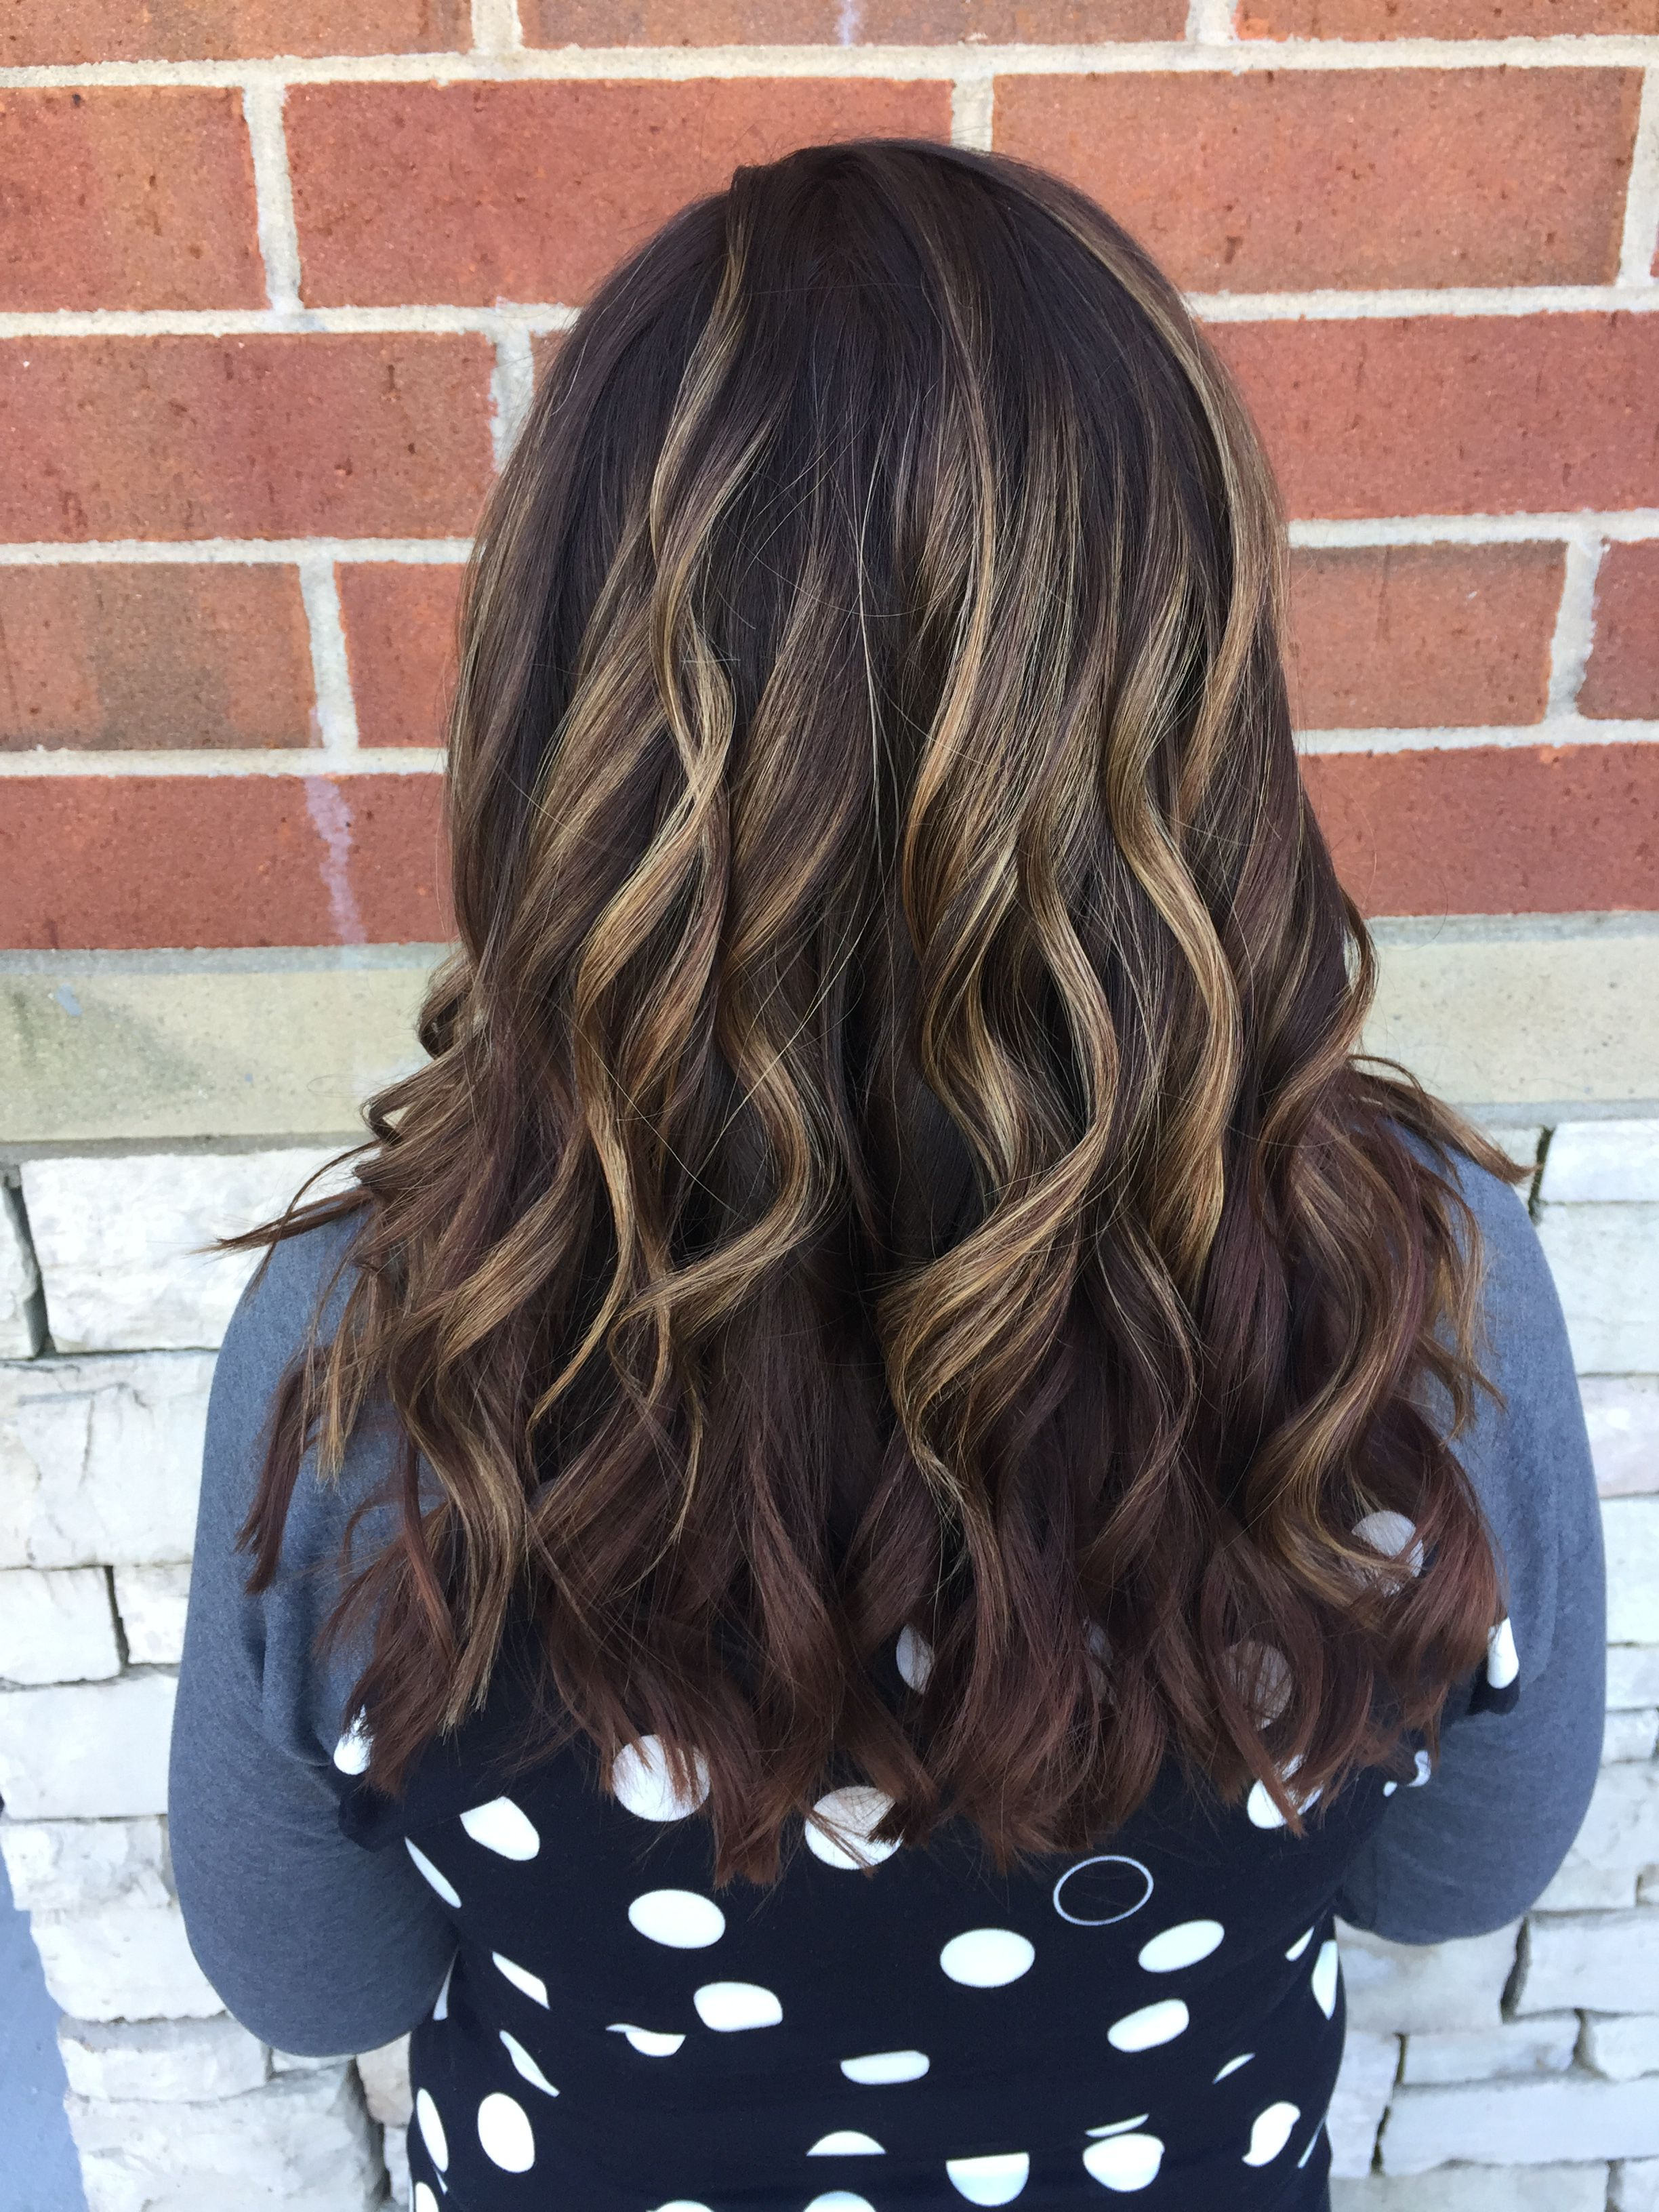 Beautiful root shadow with curls #rootshadow #redken #curls #hair #haircolor #balayage